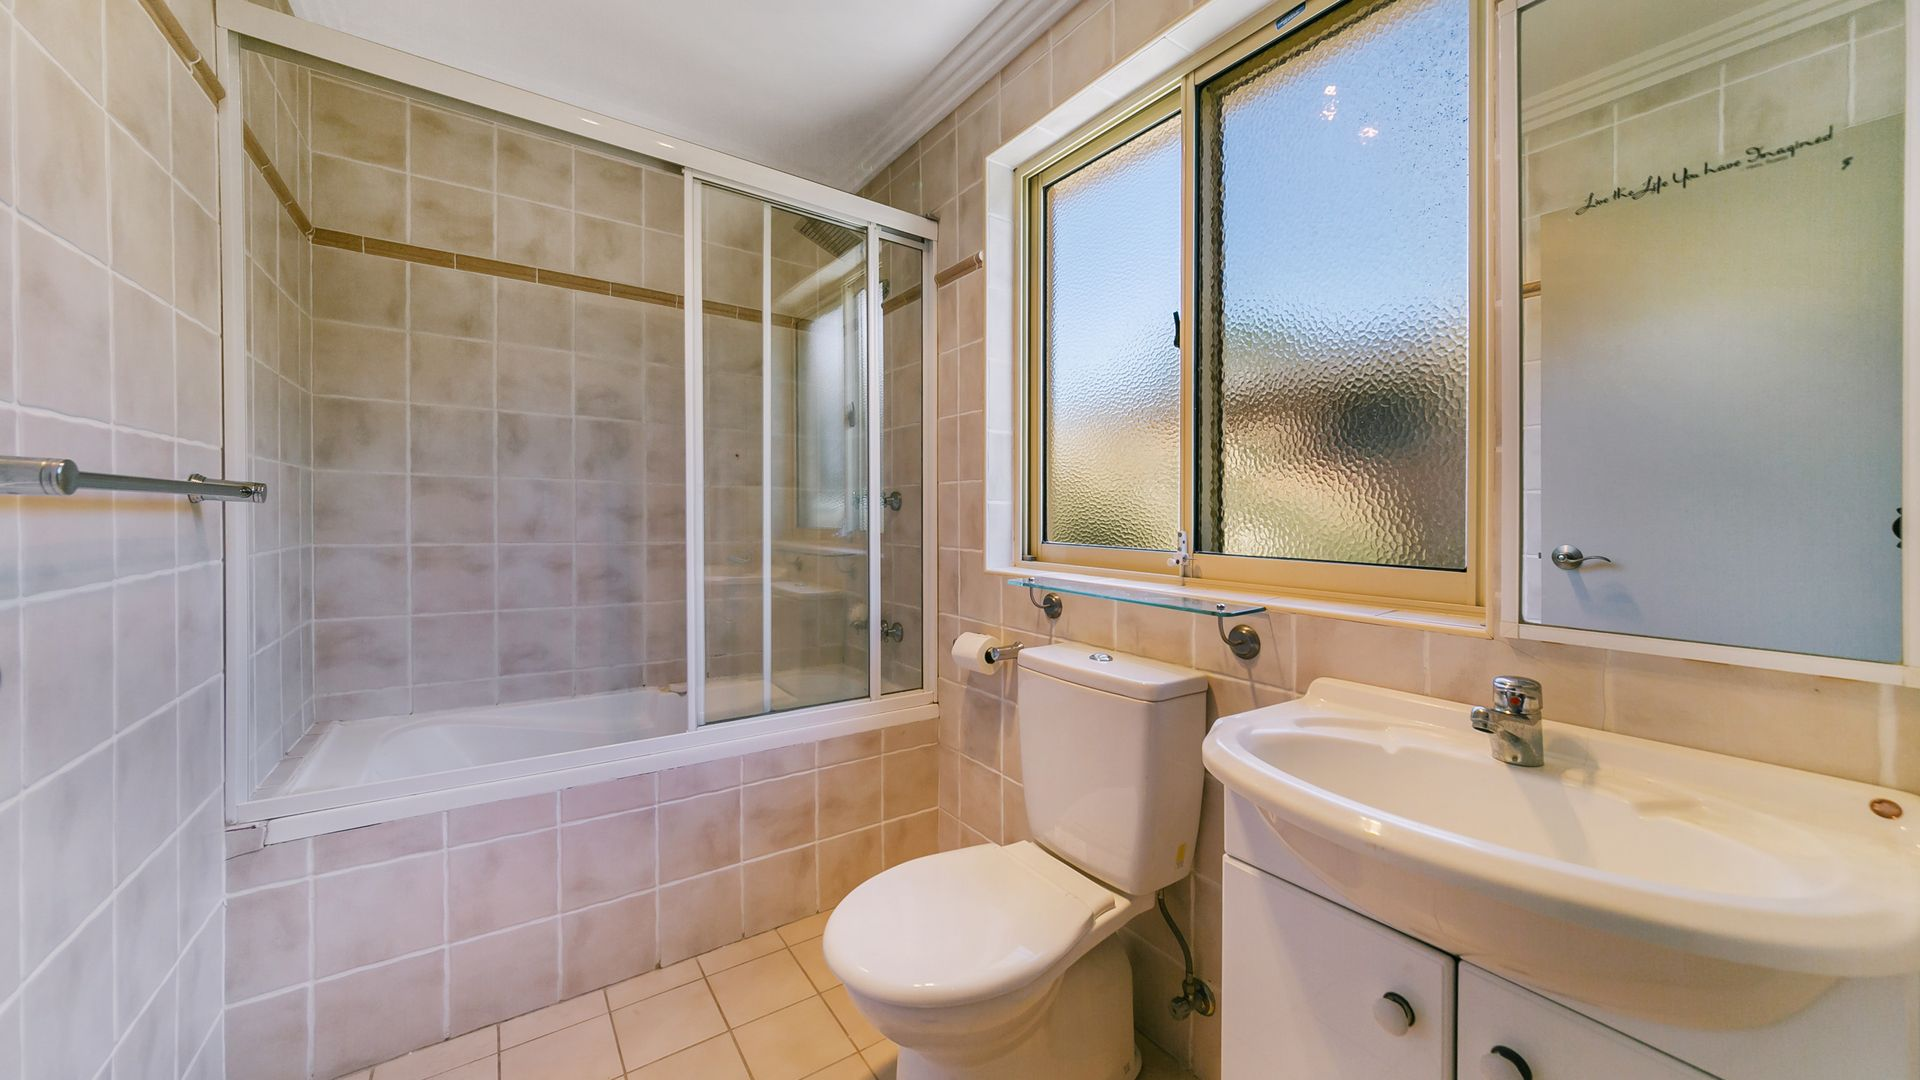 2/16 Rokeby Road, Abbotsford NSW 2046, Image 6